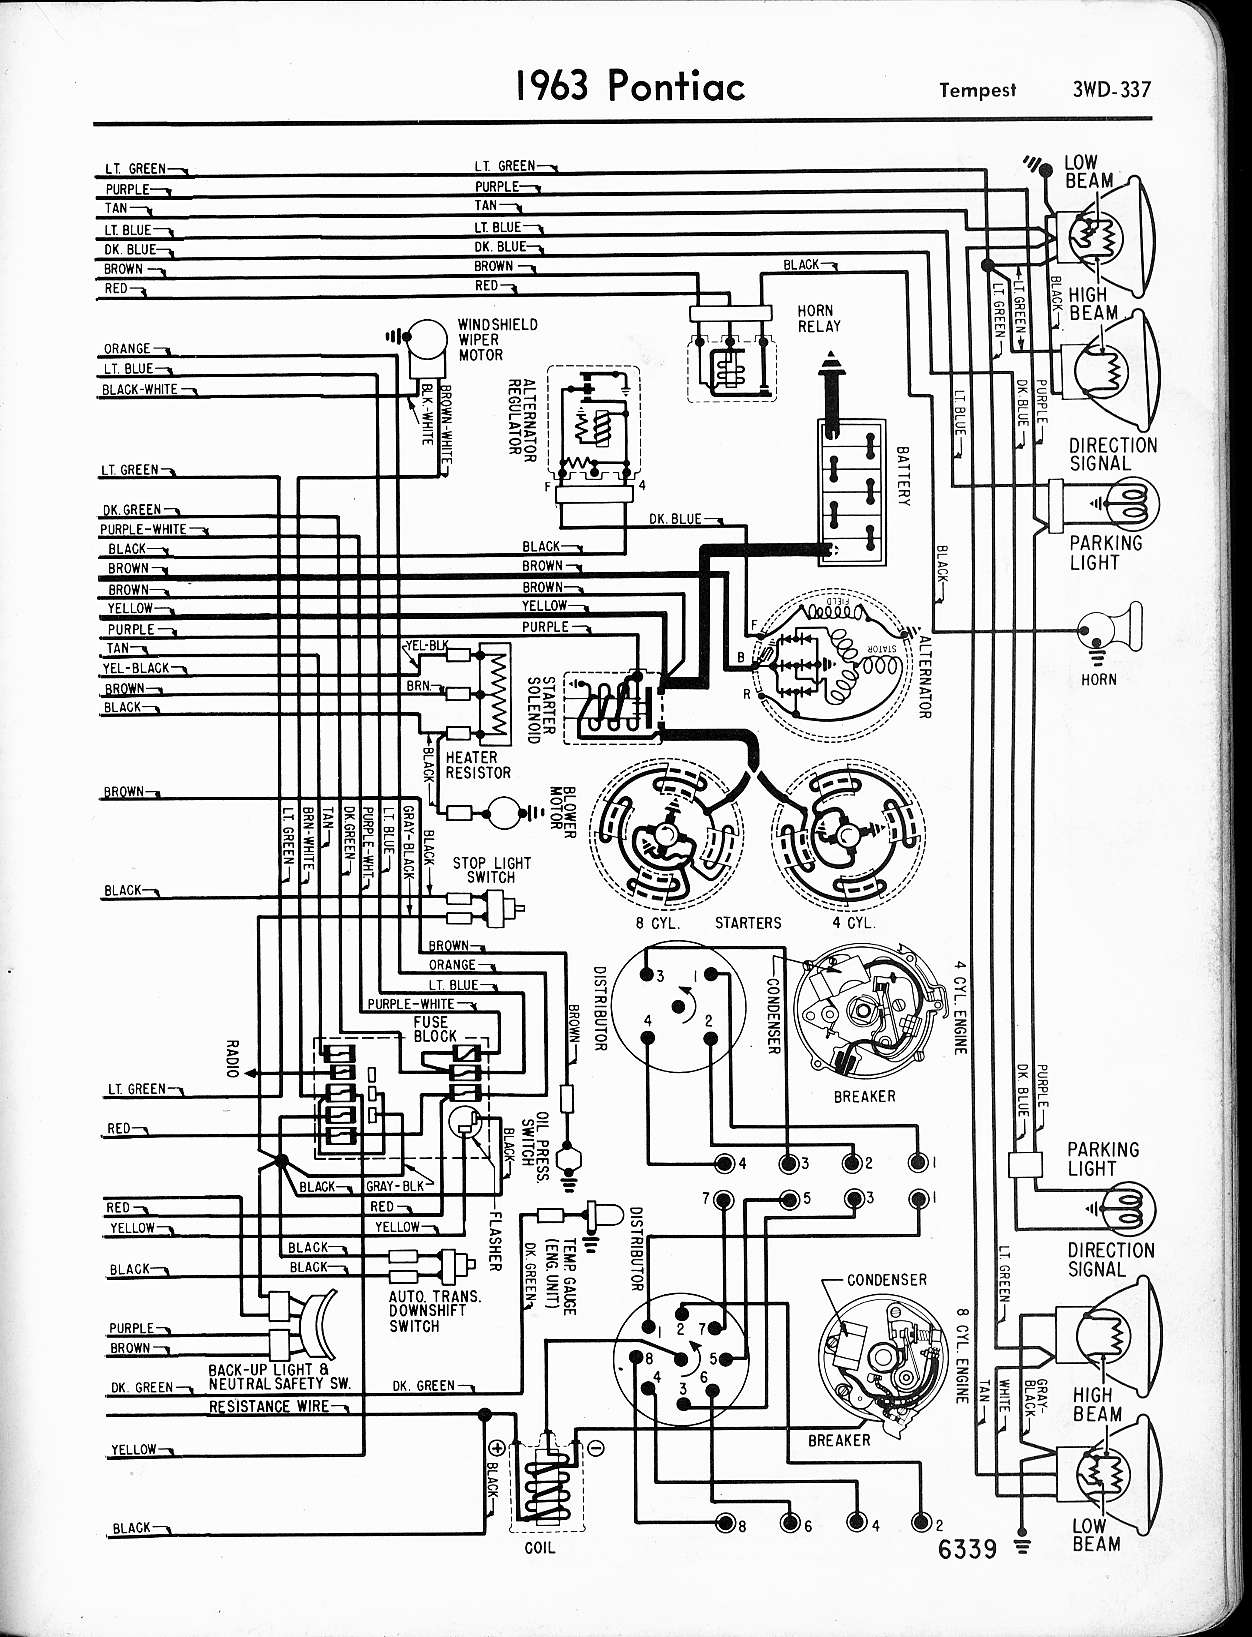 1968 Pontiac Tempest Wiring Diagram - Wiring Diagram G9 on 1968 triumph gt6 wiring diagram, 1970 vw bug wiring diagram, 1968 triumph spitfire wiring diagram, 2000 mercury marquis wiring diagram, 1969 mgb wiring diagram,